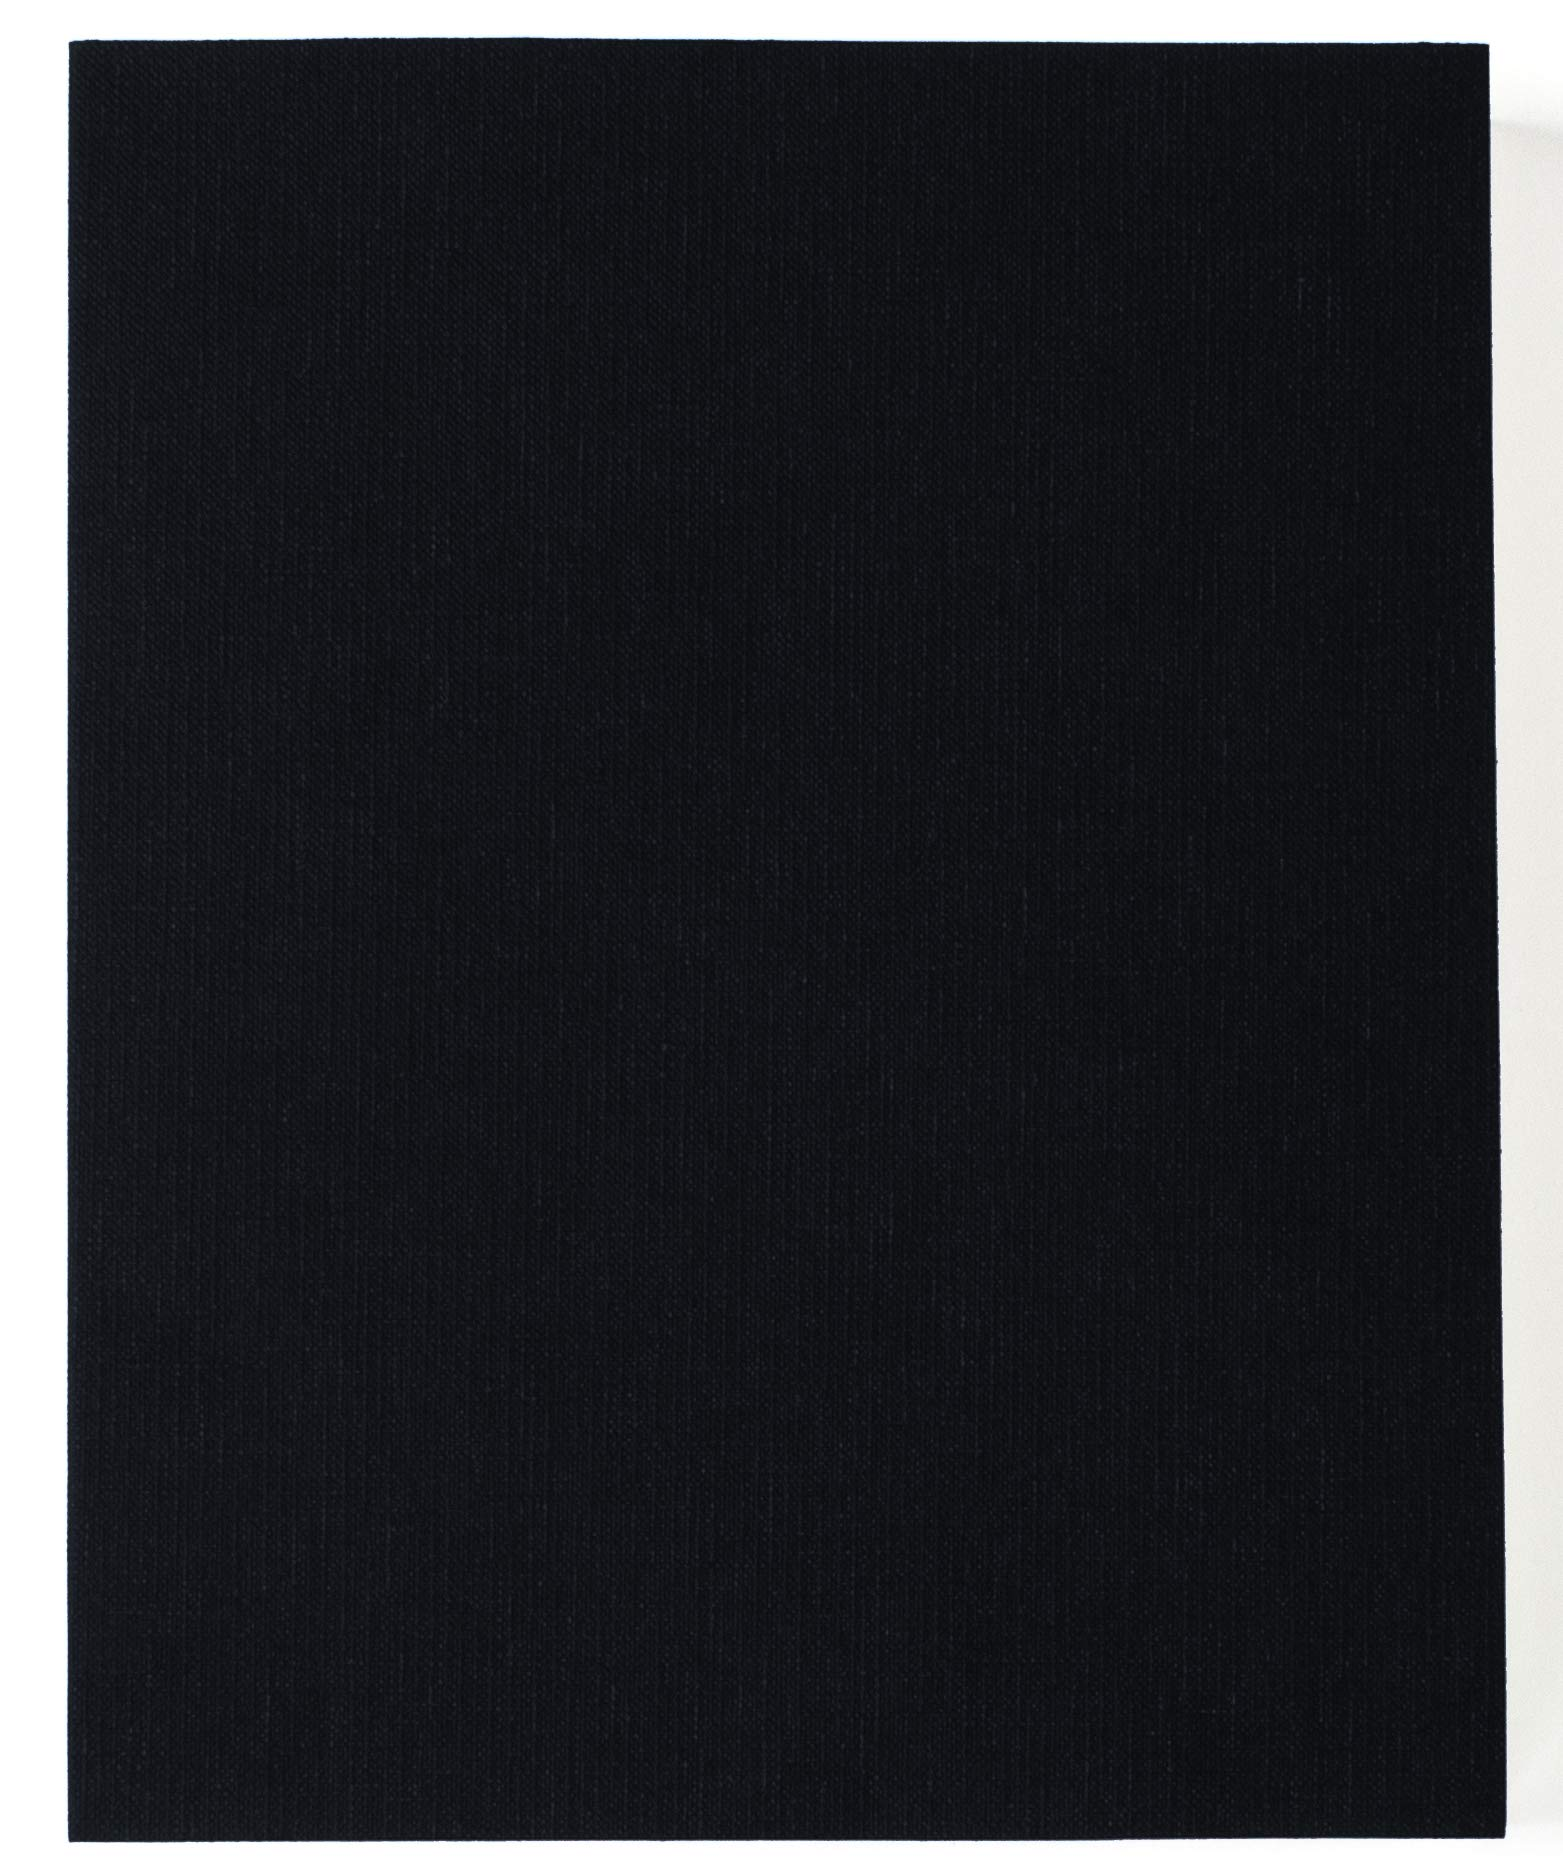 Album Envy Euro Professional Matted Slip-in Photo Albums   Modern Cover Style   Choose 10-30 Photo Sizes, 5x7 or 4x6   Acid-Free Archival Quality Mats   (Black, 5''x7'' - 30 Photos) by Album Envy